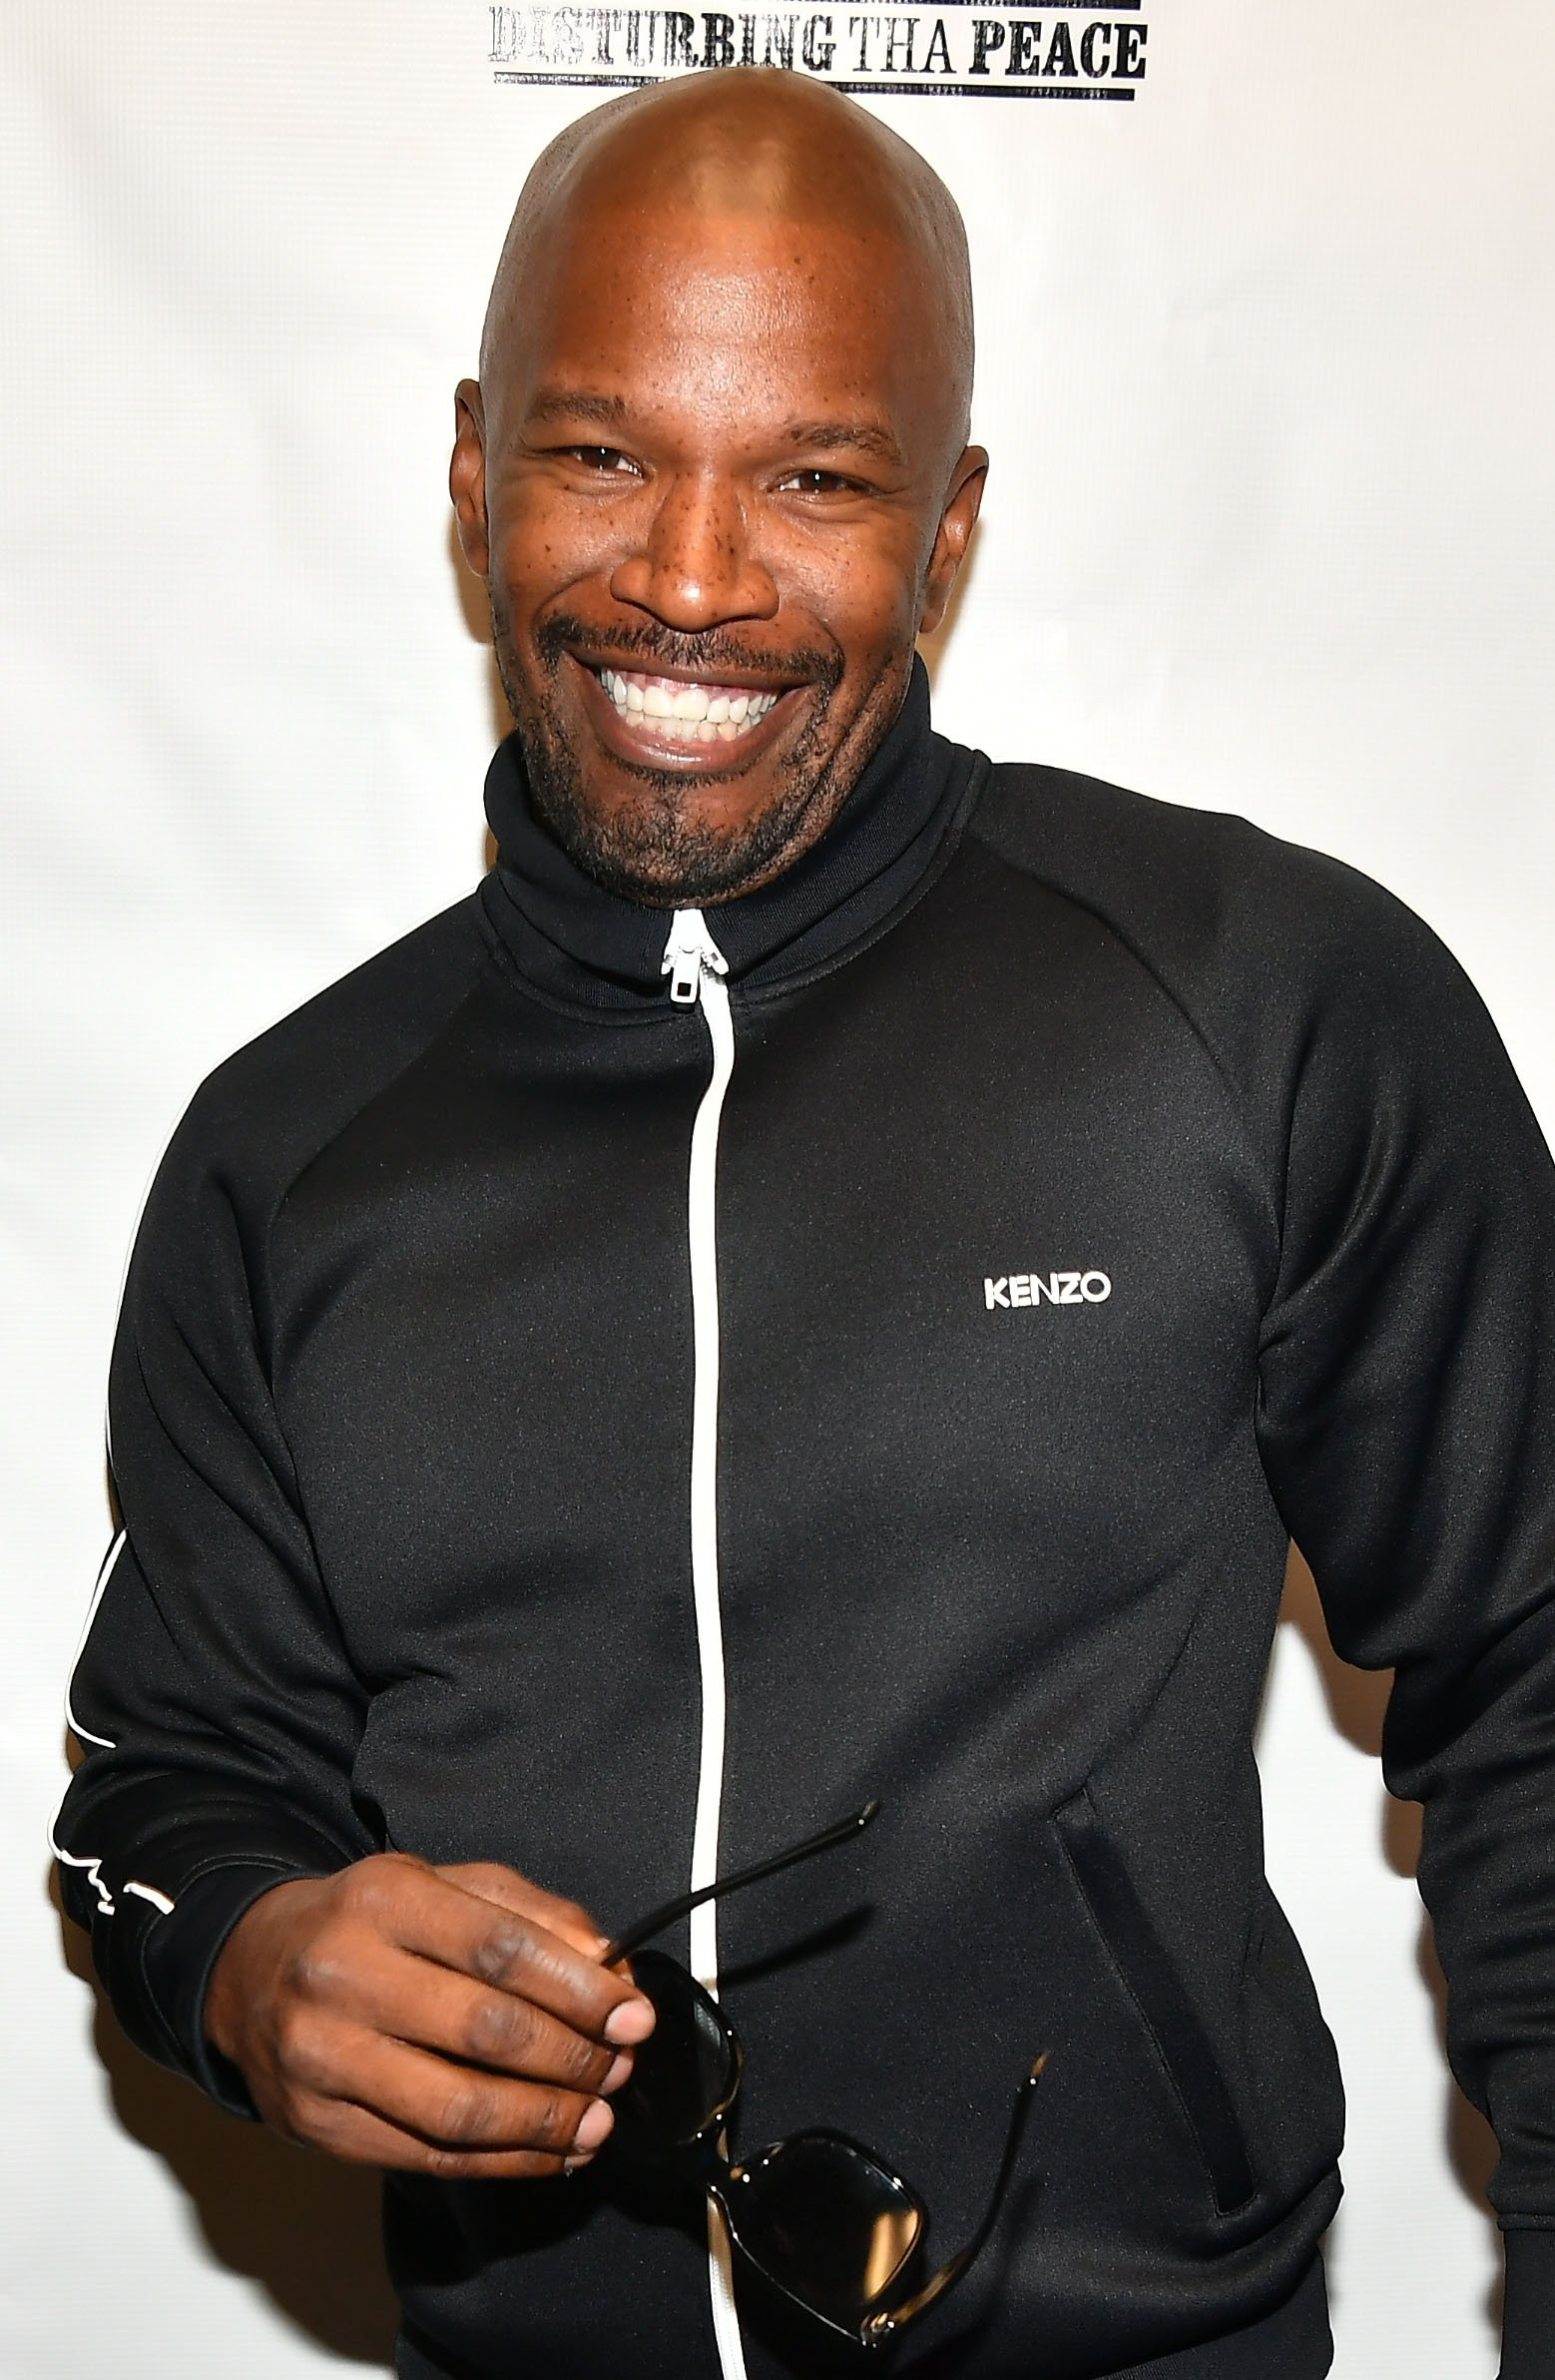 Actor Jamie Foxx attends 2018 LudaDay Celebrity Basketball Game at Morehouse College - Forbes Arena on September 2, 2018. | Source: Getty Images